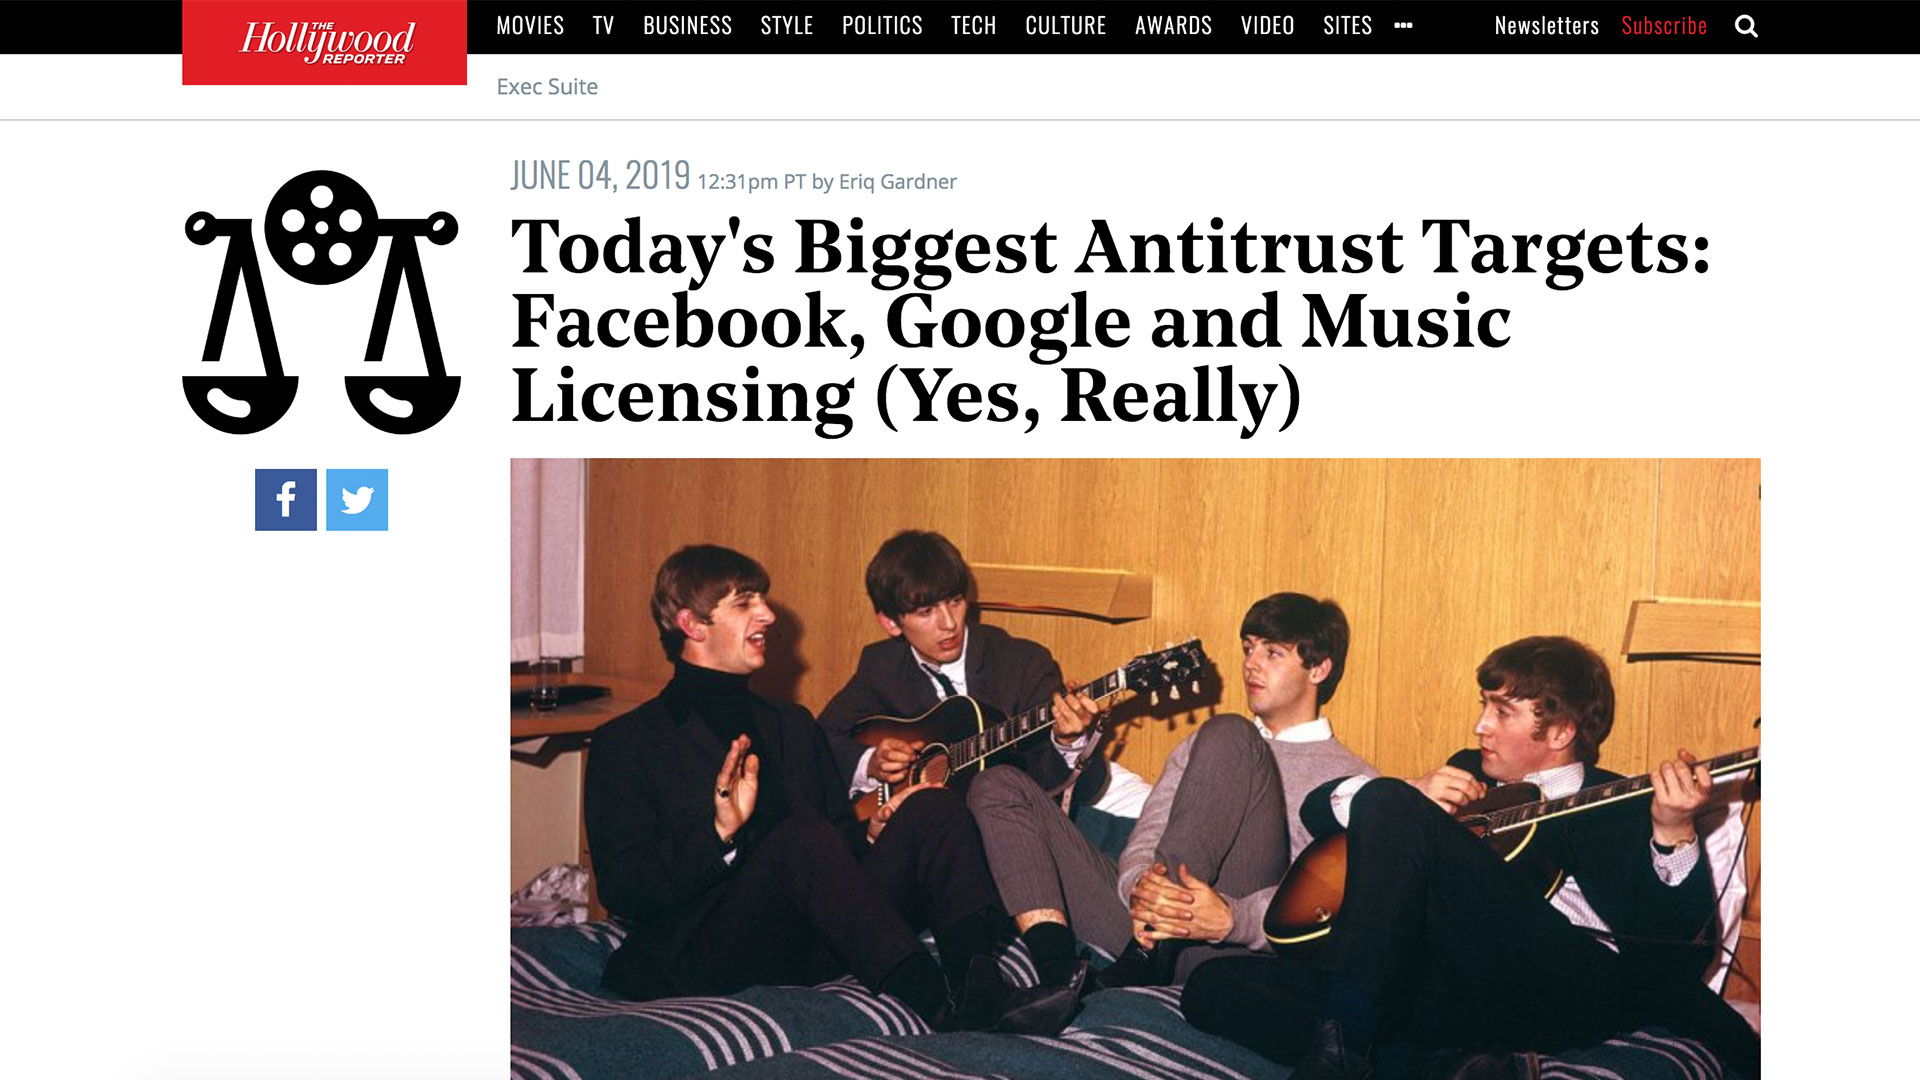 Fairness Rocks News Today's Biggest Antitrust Targets: Facebook, Google and Music Licensing (Yes, Really)